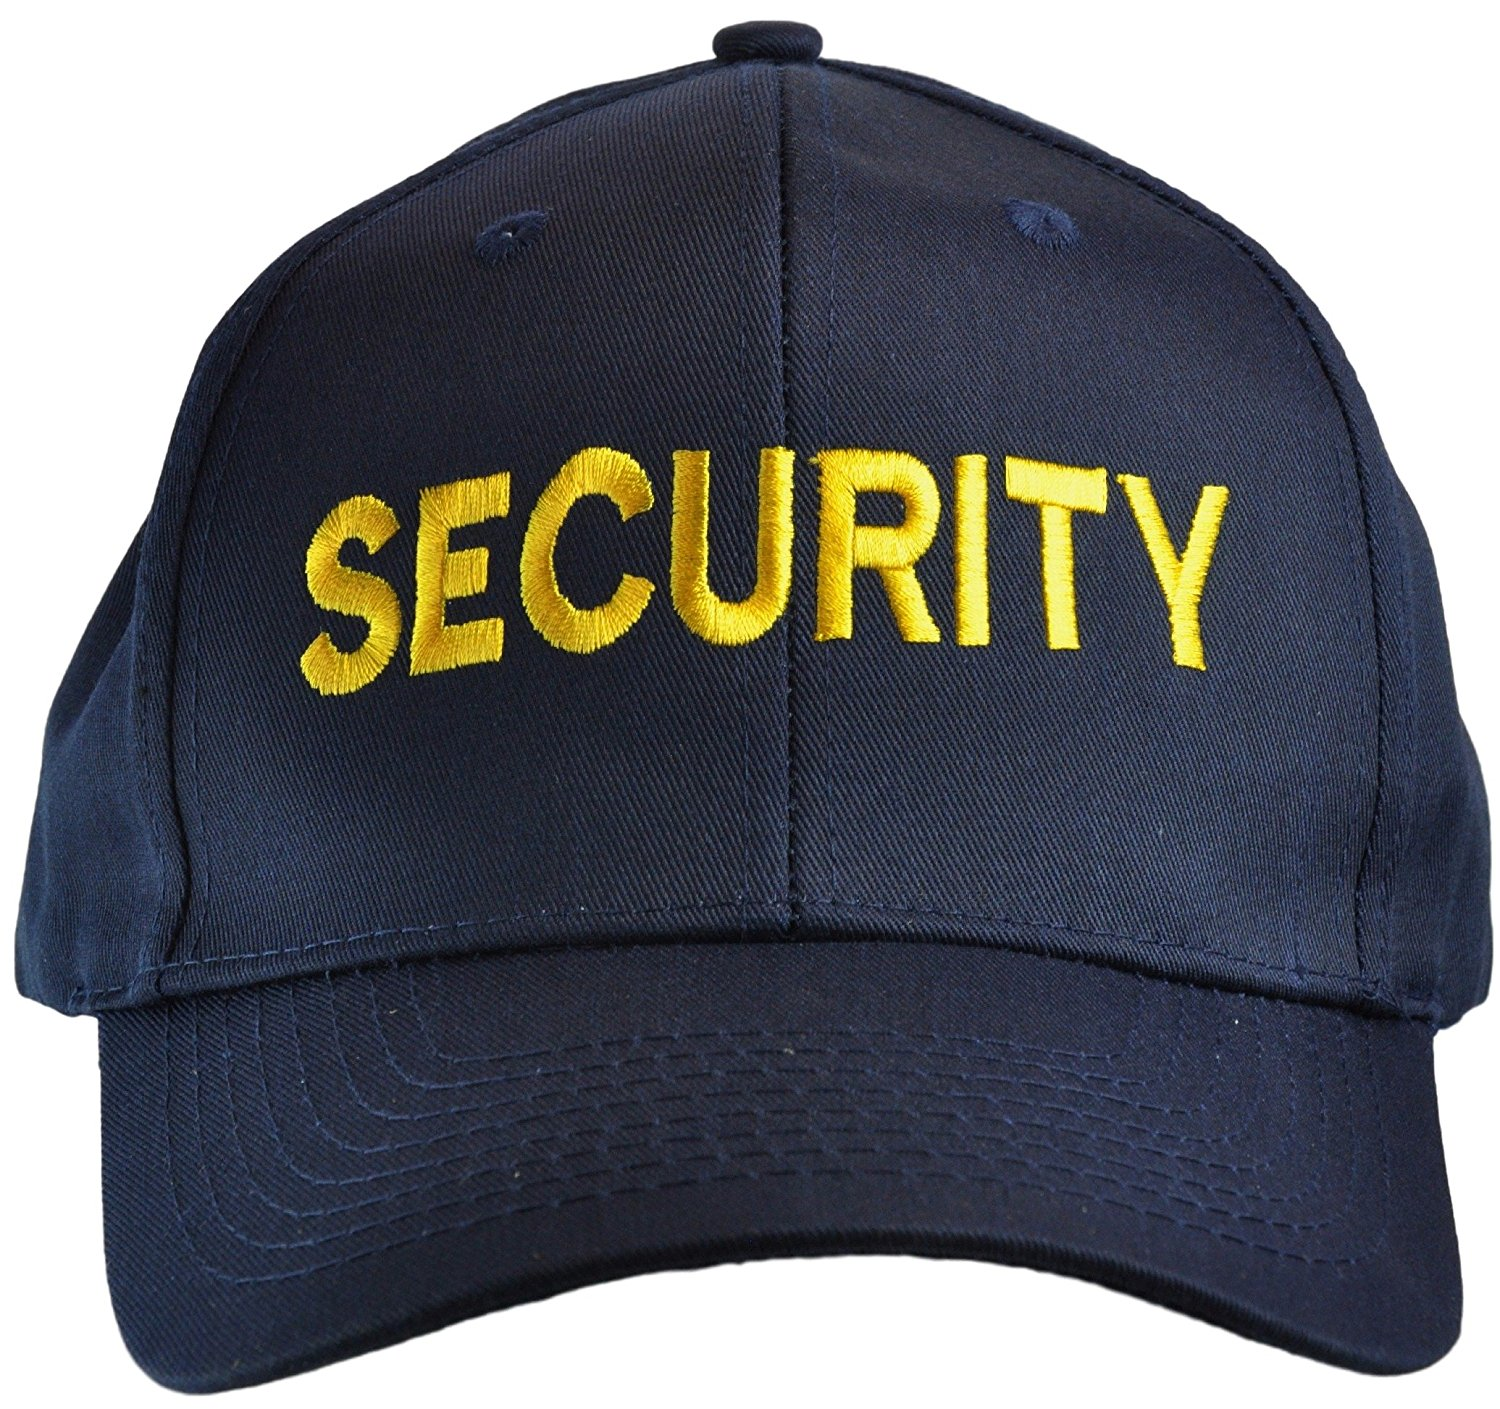 Tactical 365? Operation First Response Police or Security Embroidered Cotton Twill hat - Gold on Navy, Security